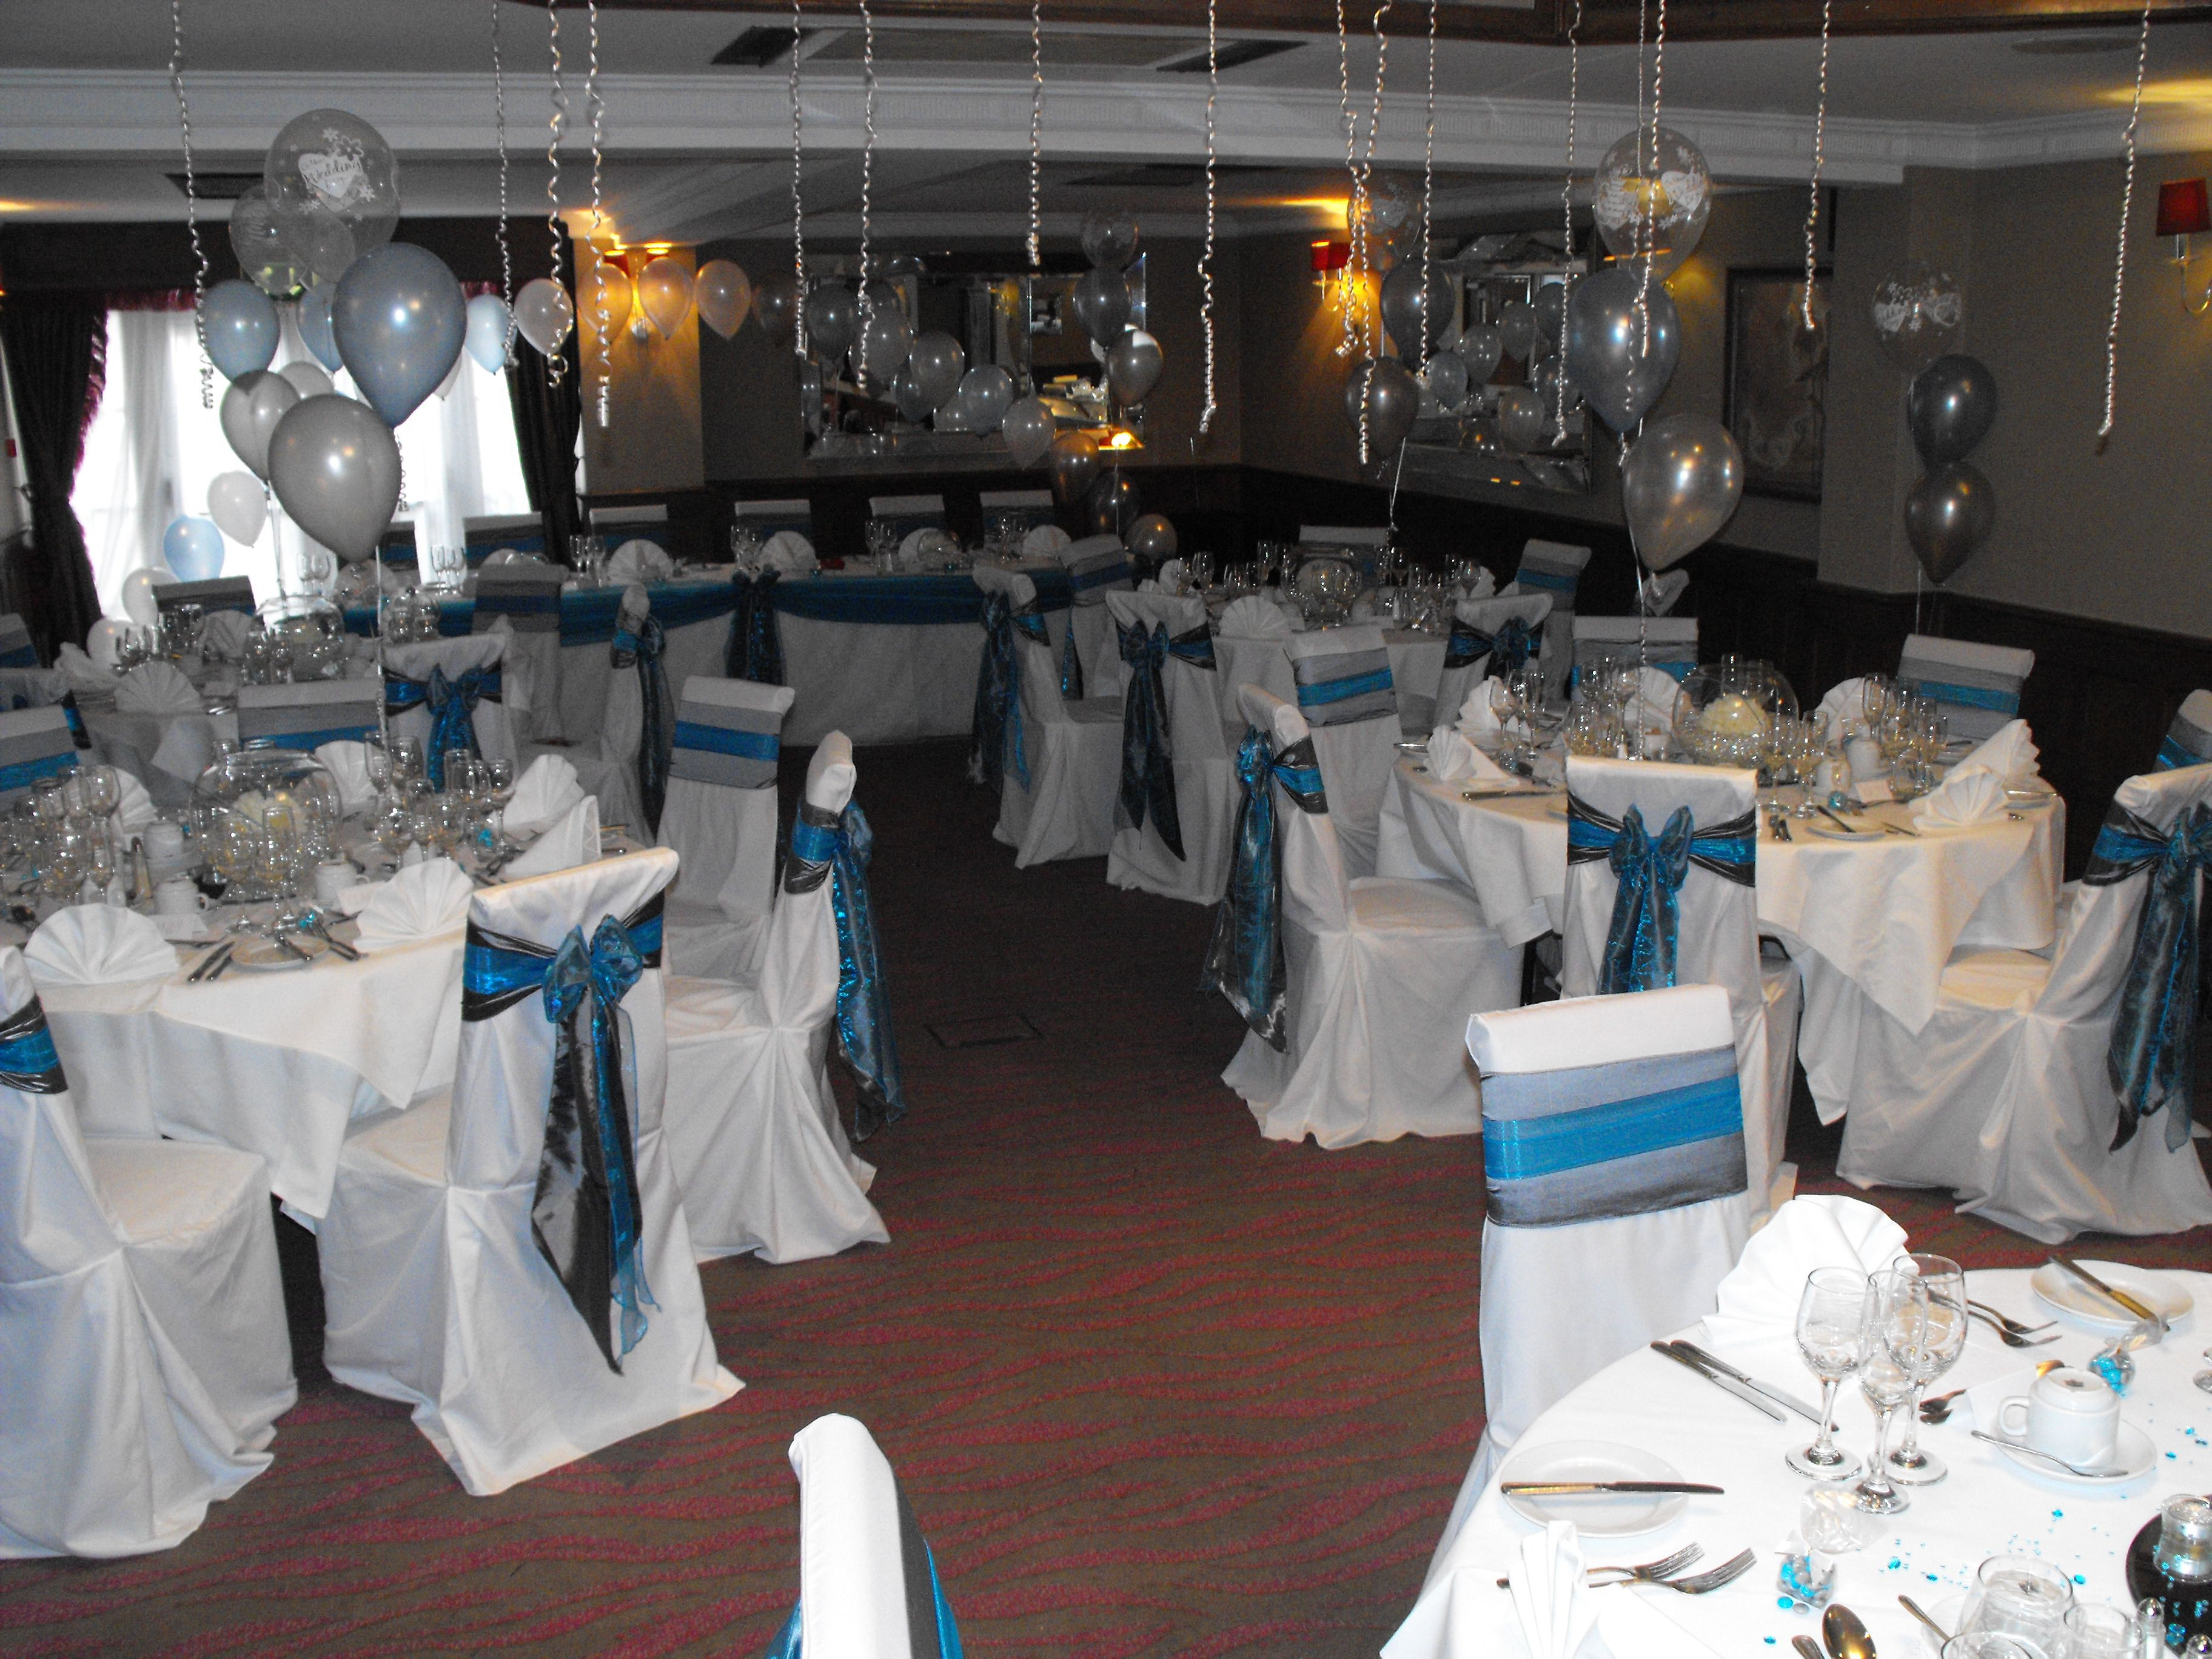 teal chair covers for wedding office mats double organza and silver satin sashes on white